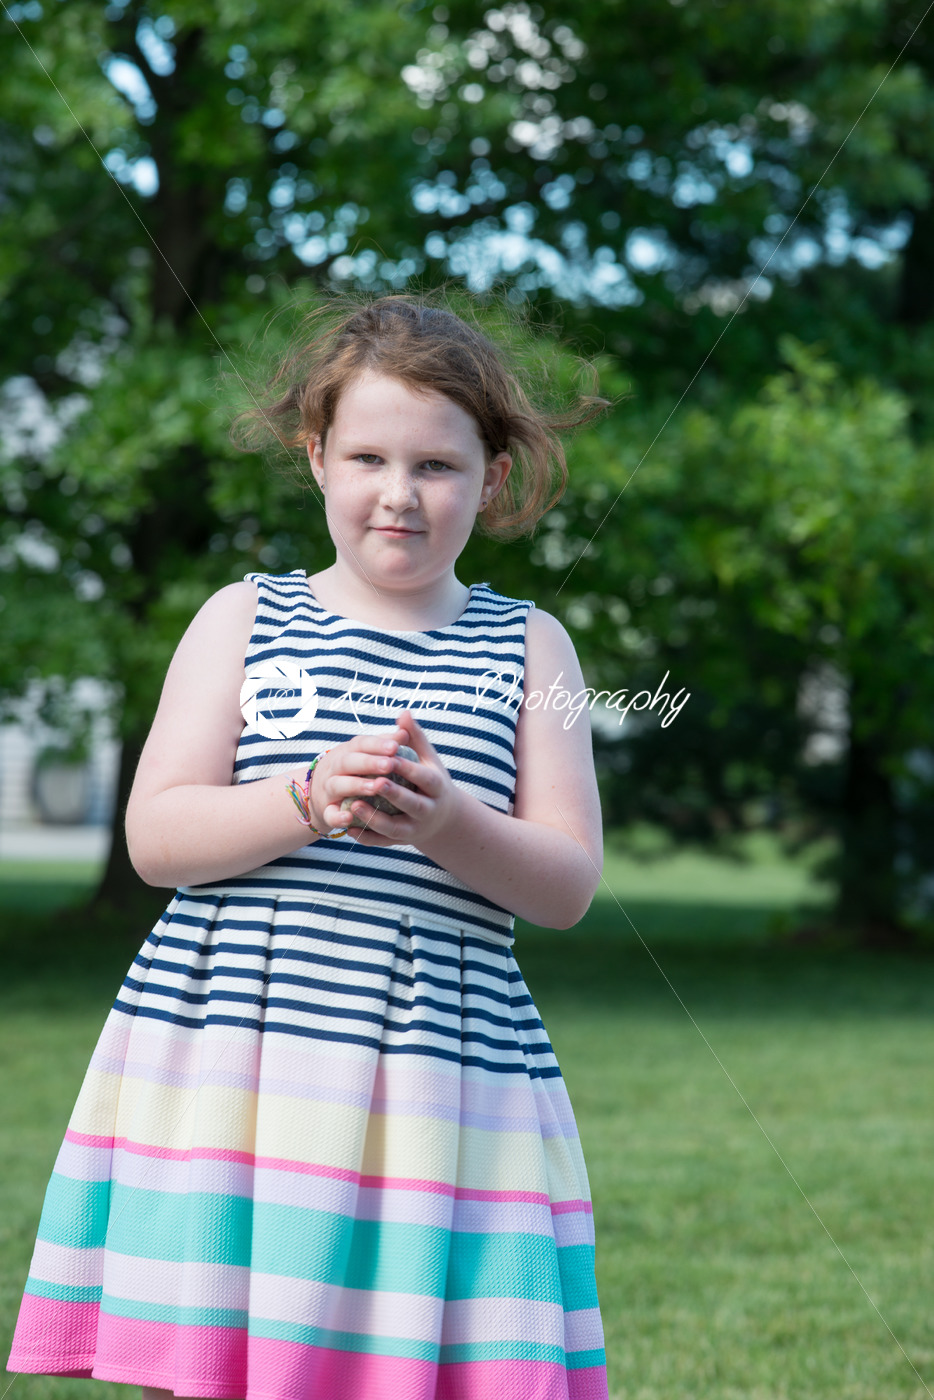 Portrait of Young Girl Standing in Backyard - Kelleher Photography Store